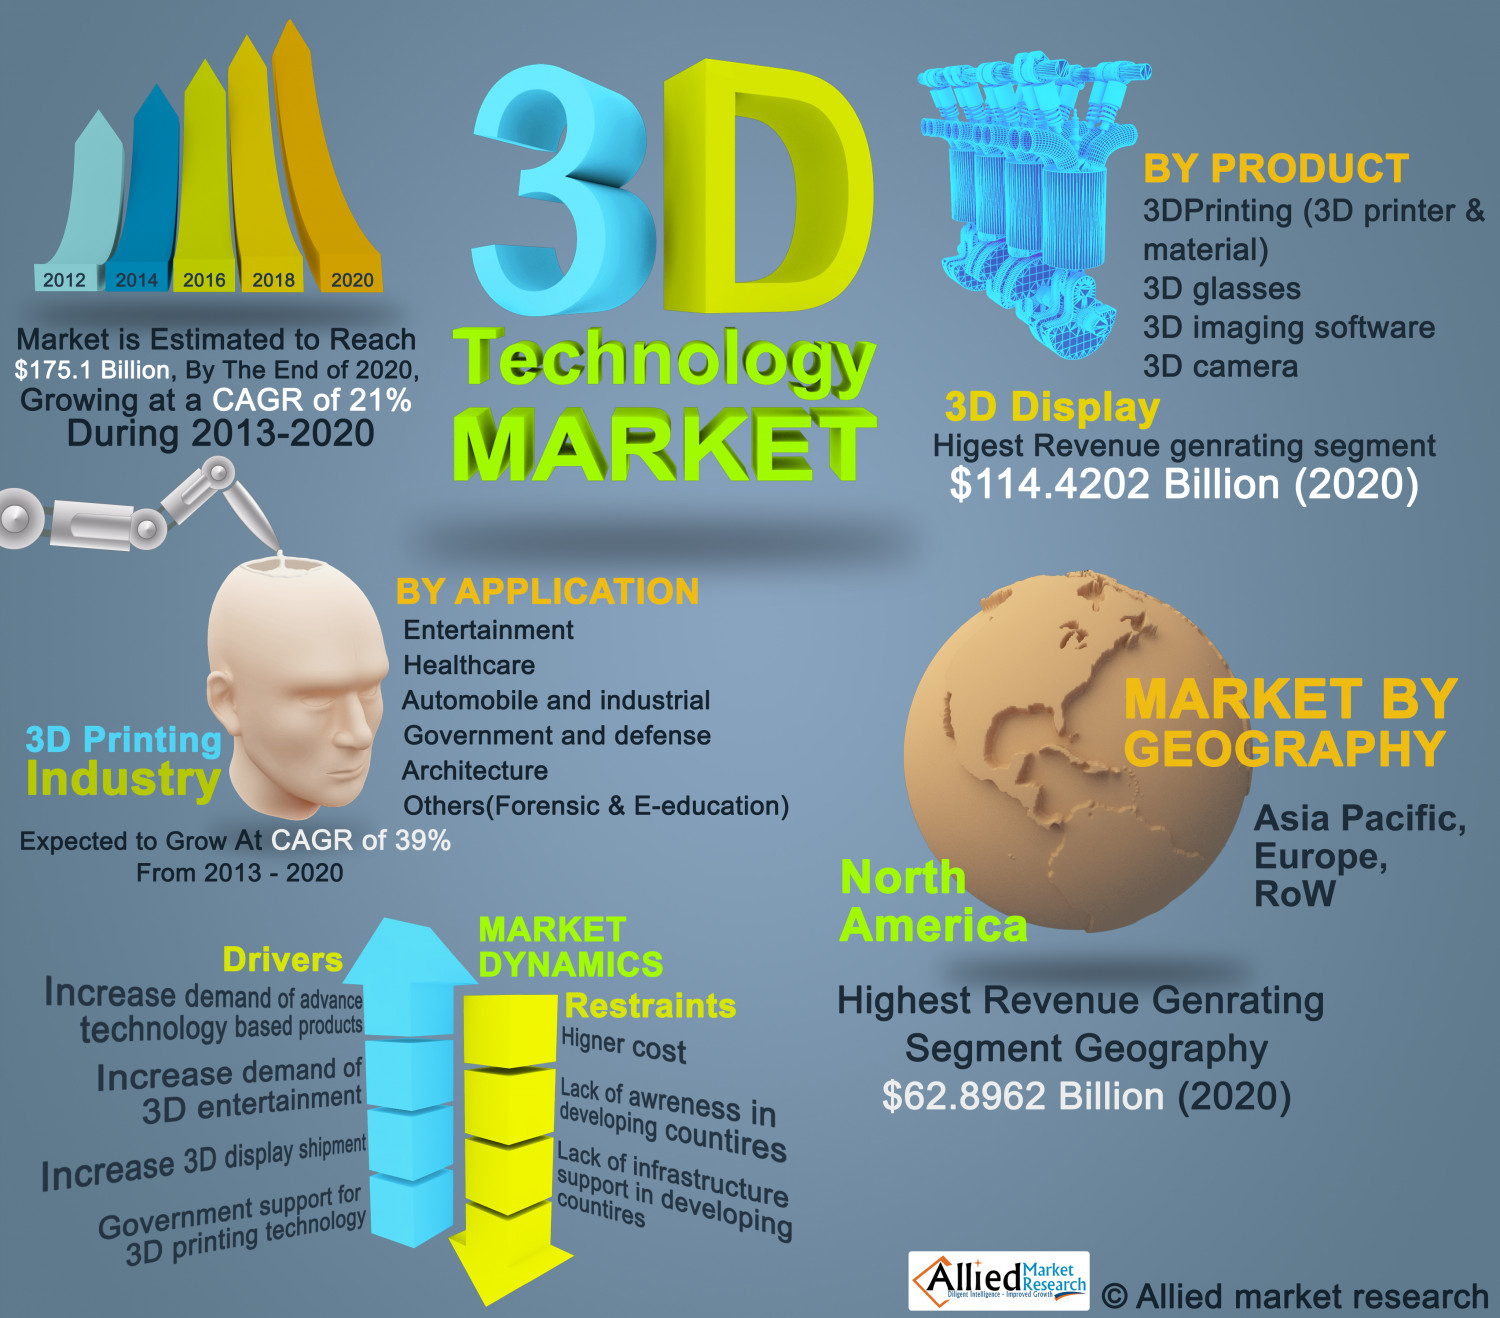 threedimensional 3d technology market by products 3d printing 3d glasses 3d cameras 3d displays 5315ca0b6ea62 w1500 - 3D Technology 101: An Overview of 3D Technology in Cinemas